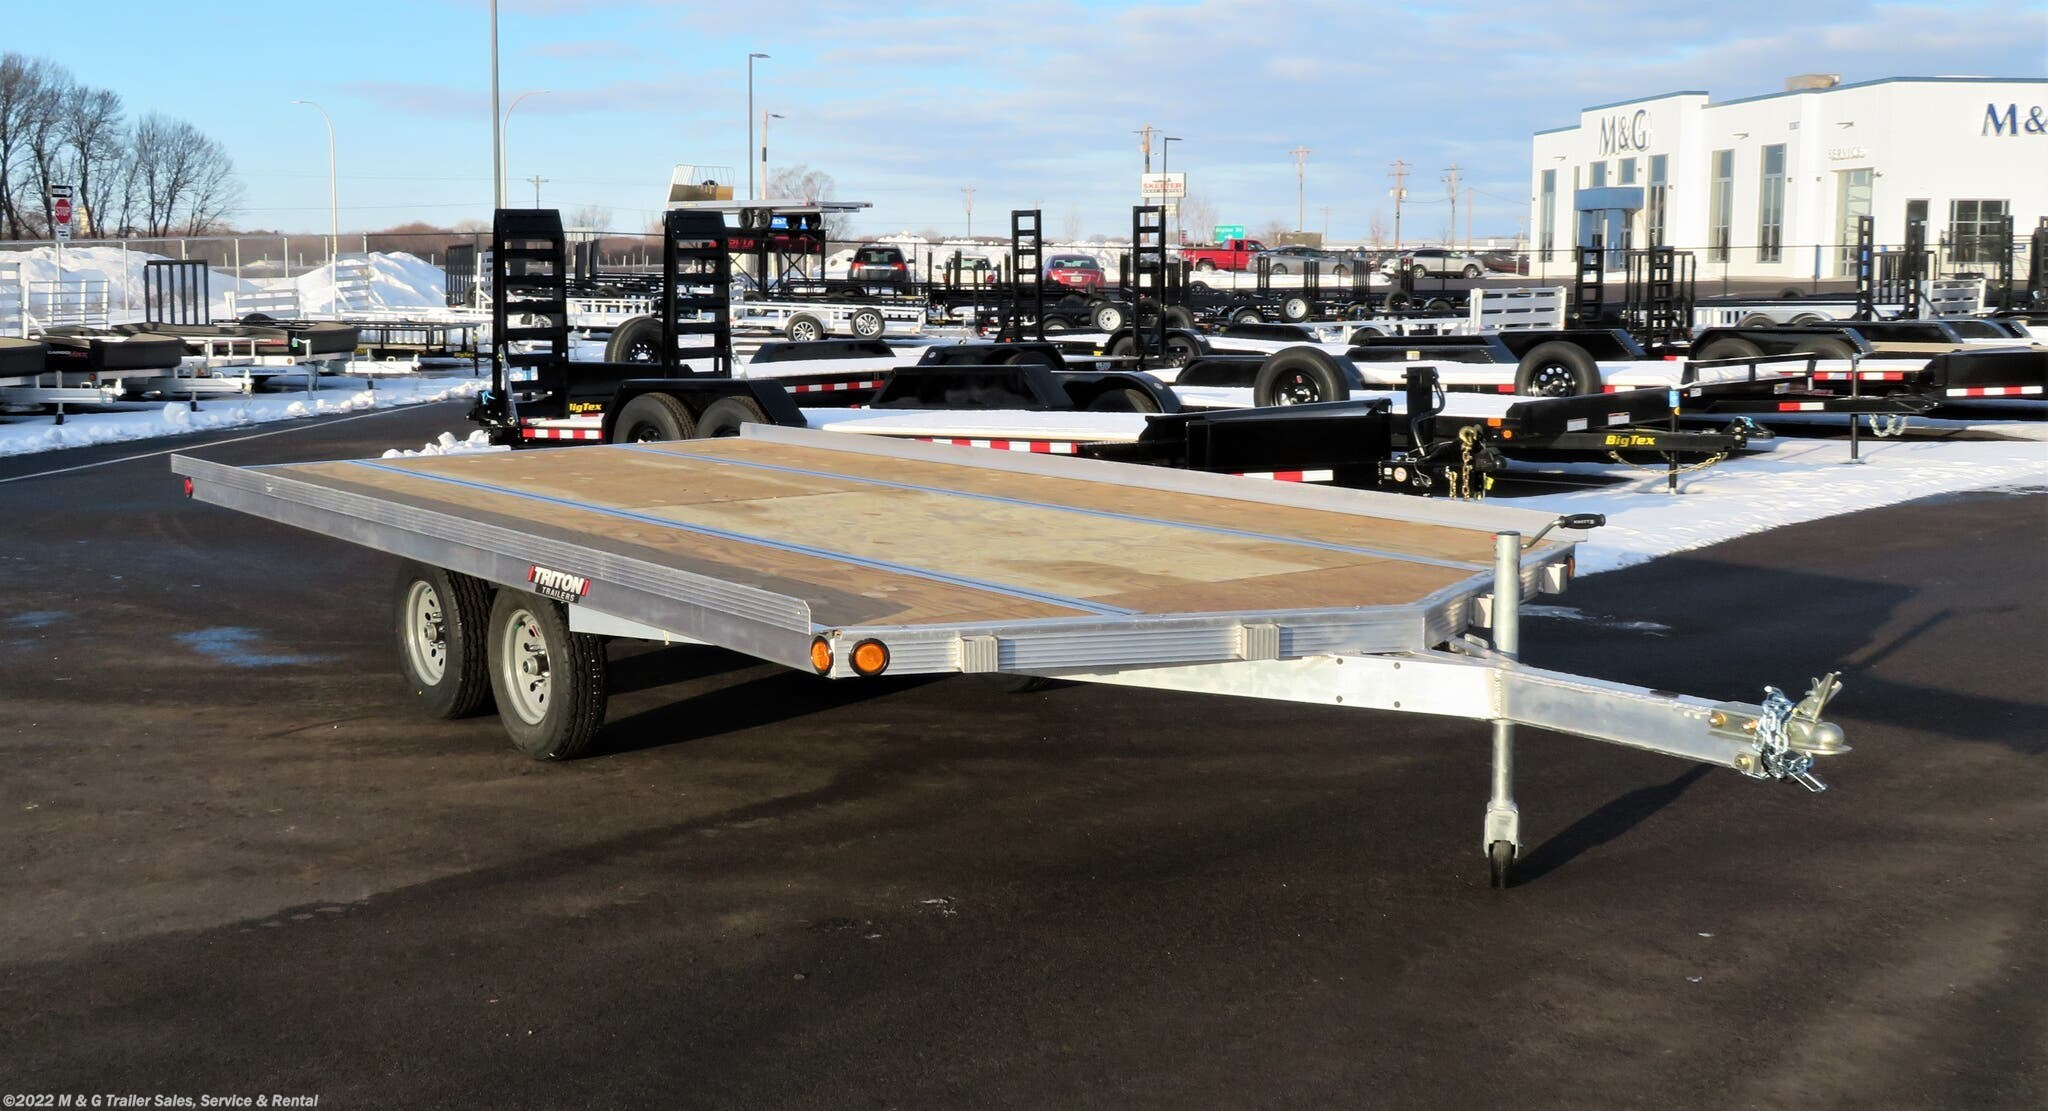 2021 Triton Trailers Elite 16-101 3 Place Snowmobile Trailer - Drive On - Stock #105709